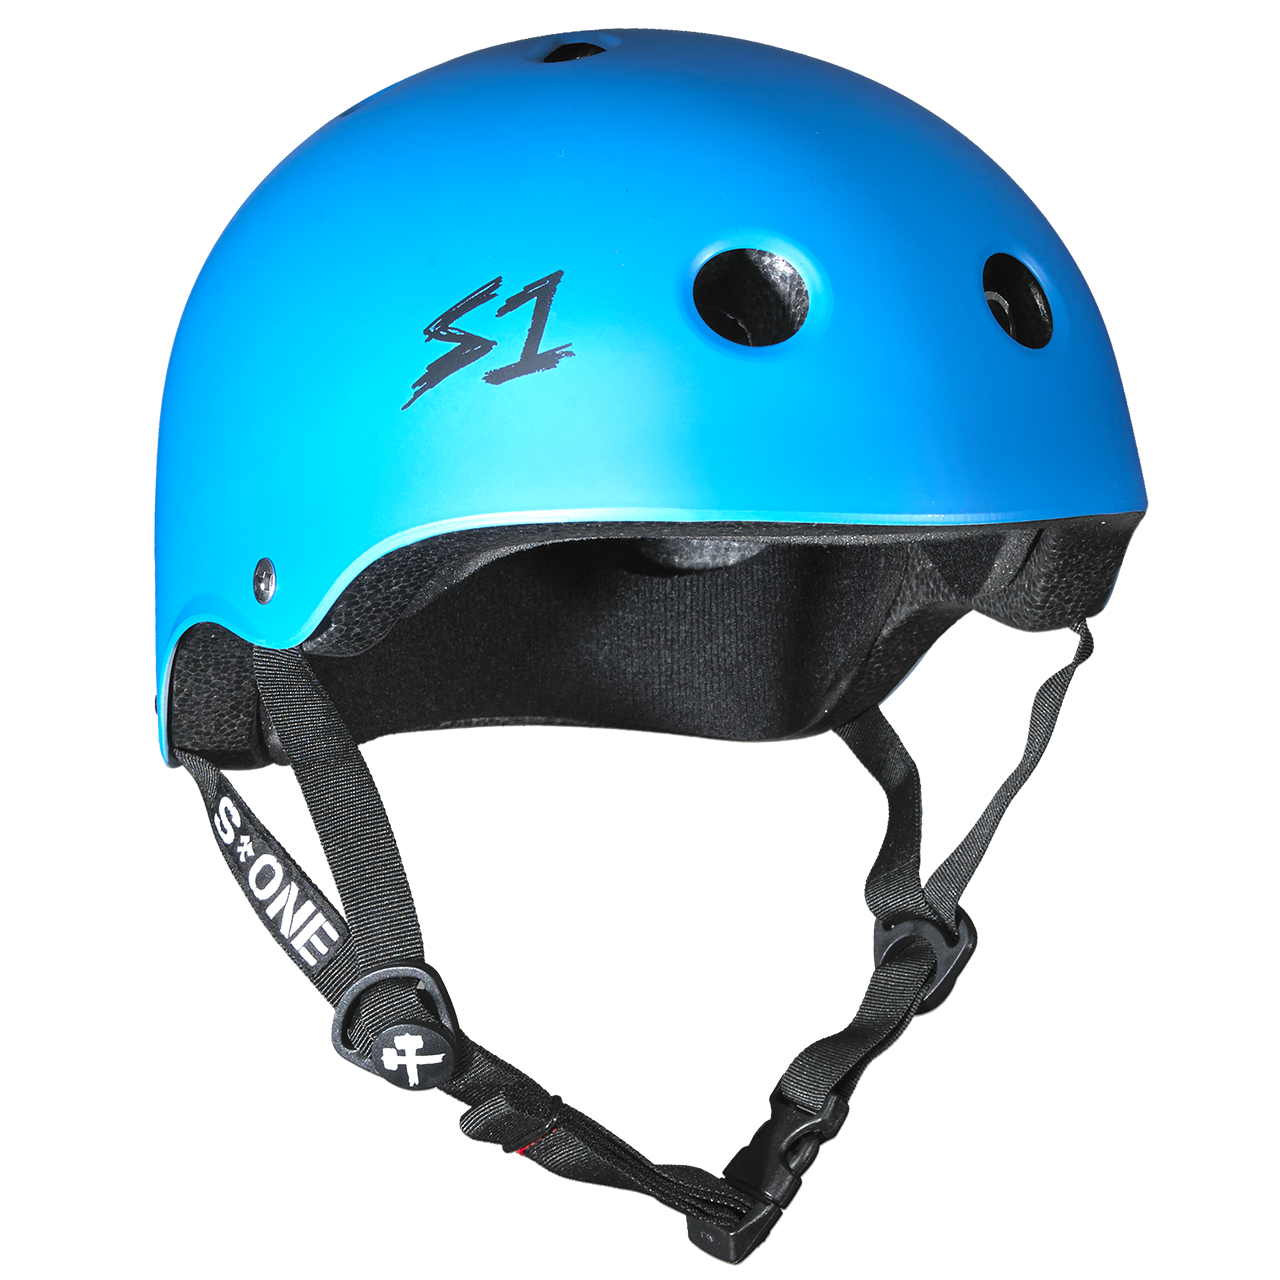 Buy an S1 Lifer Helmet